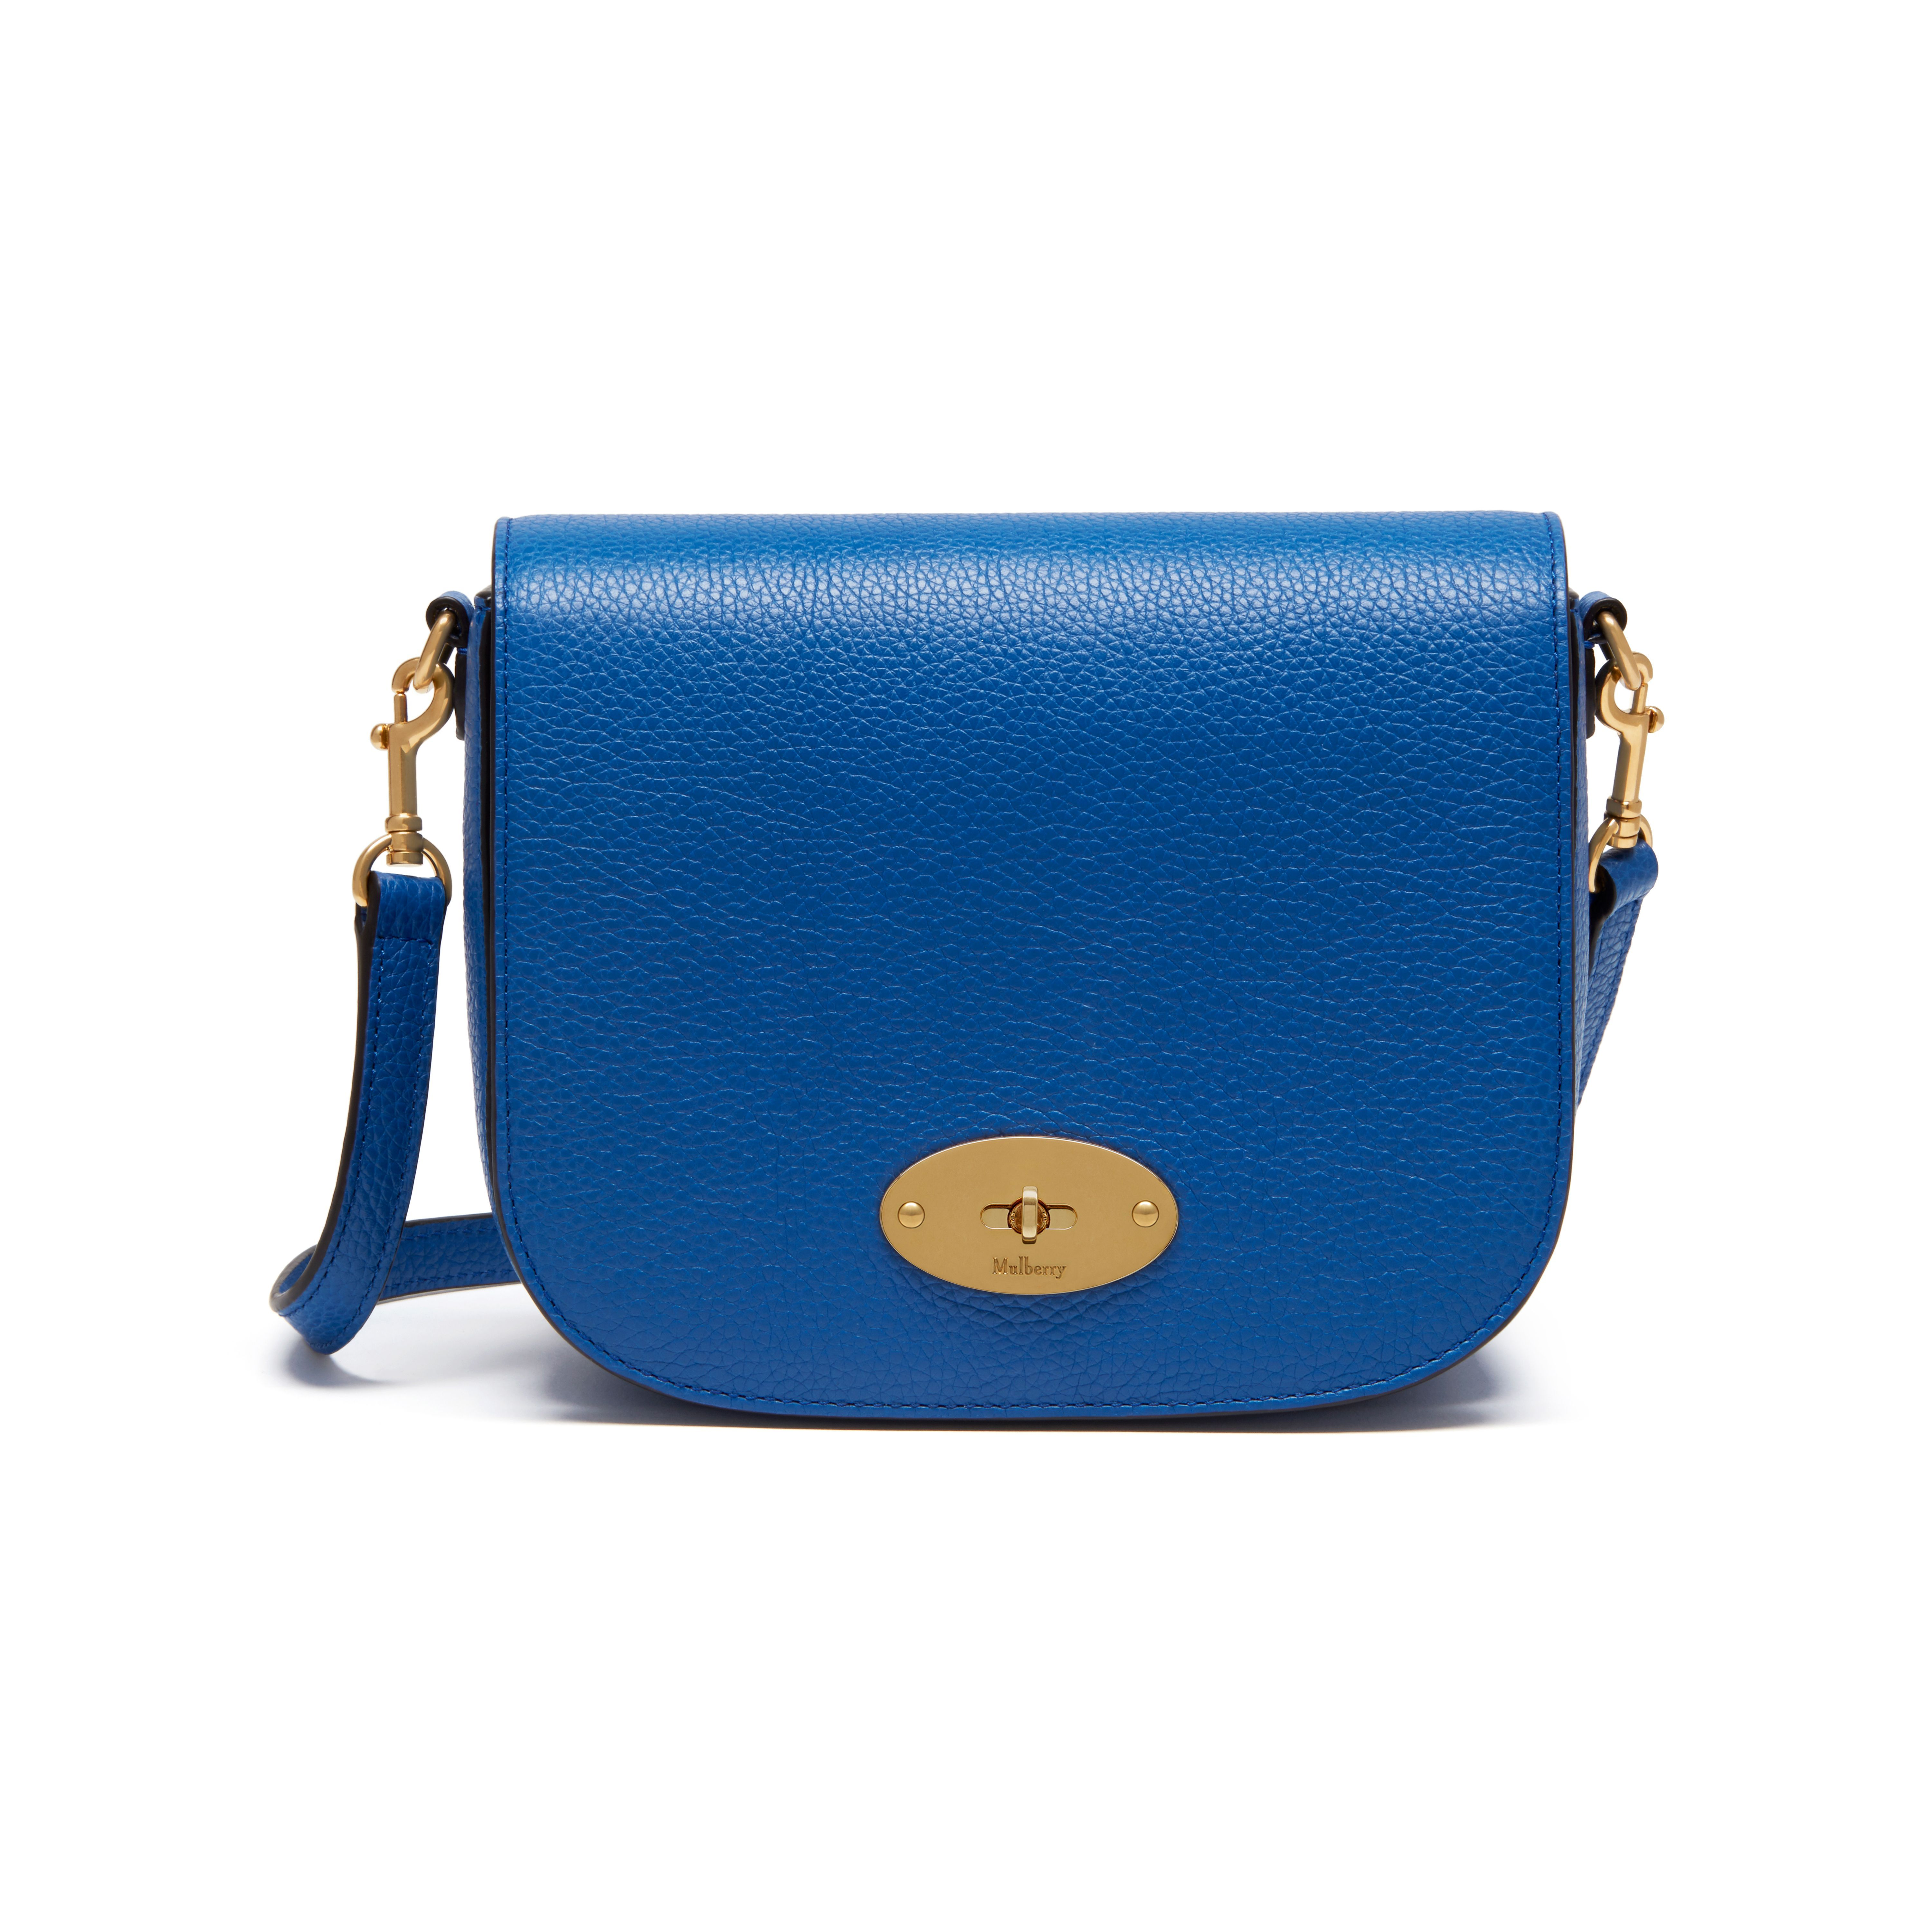 Mulberry - Small Darley Satchel in Porcelain Blue Small Classic Grain d46d51b2b361f